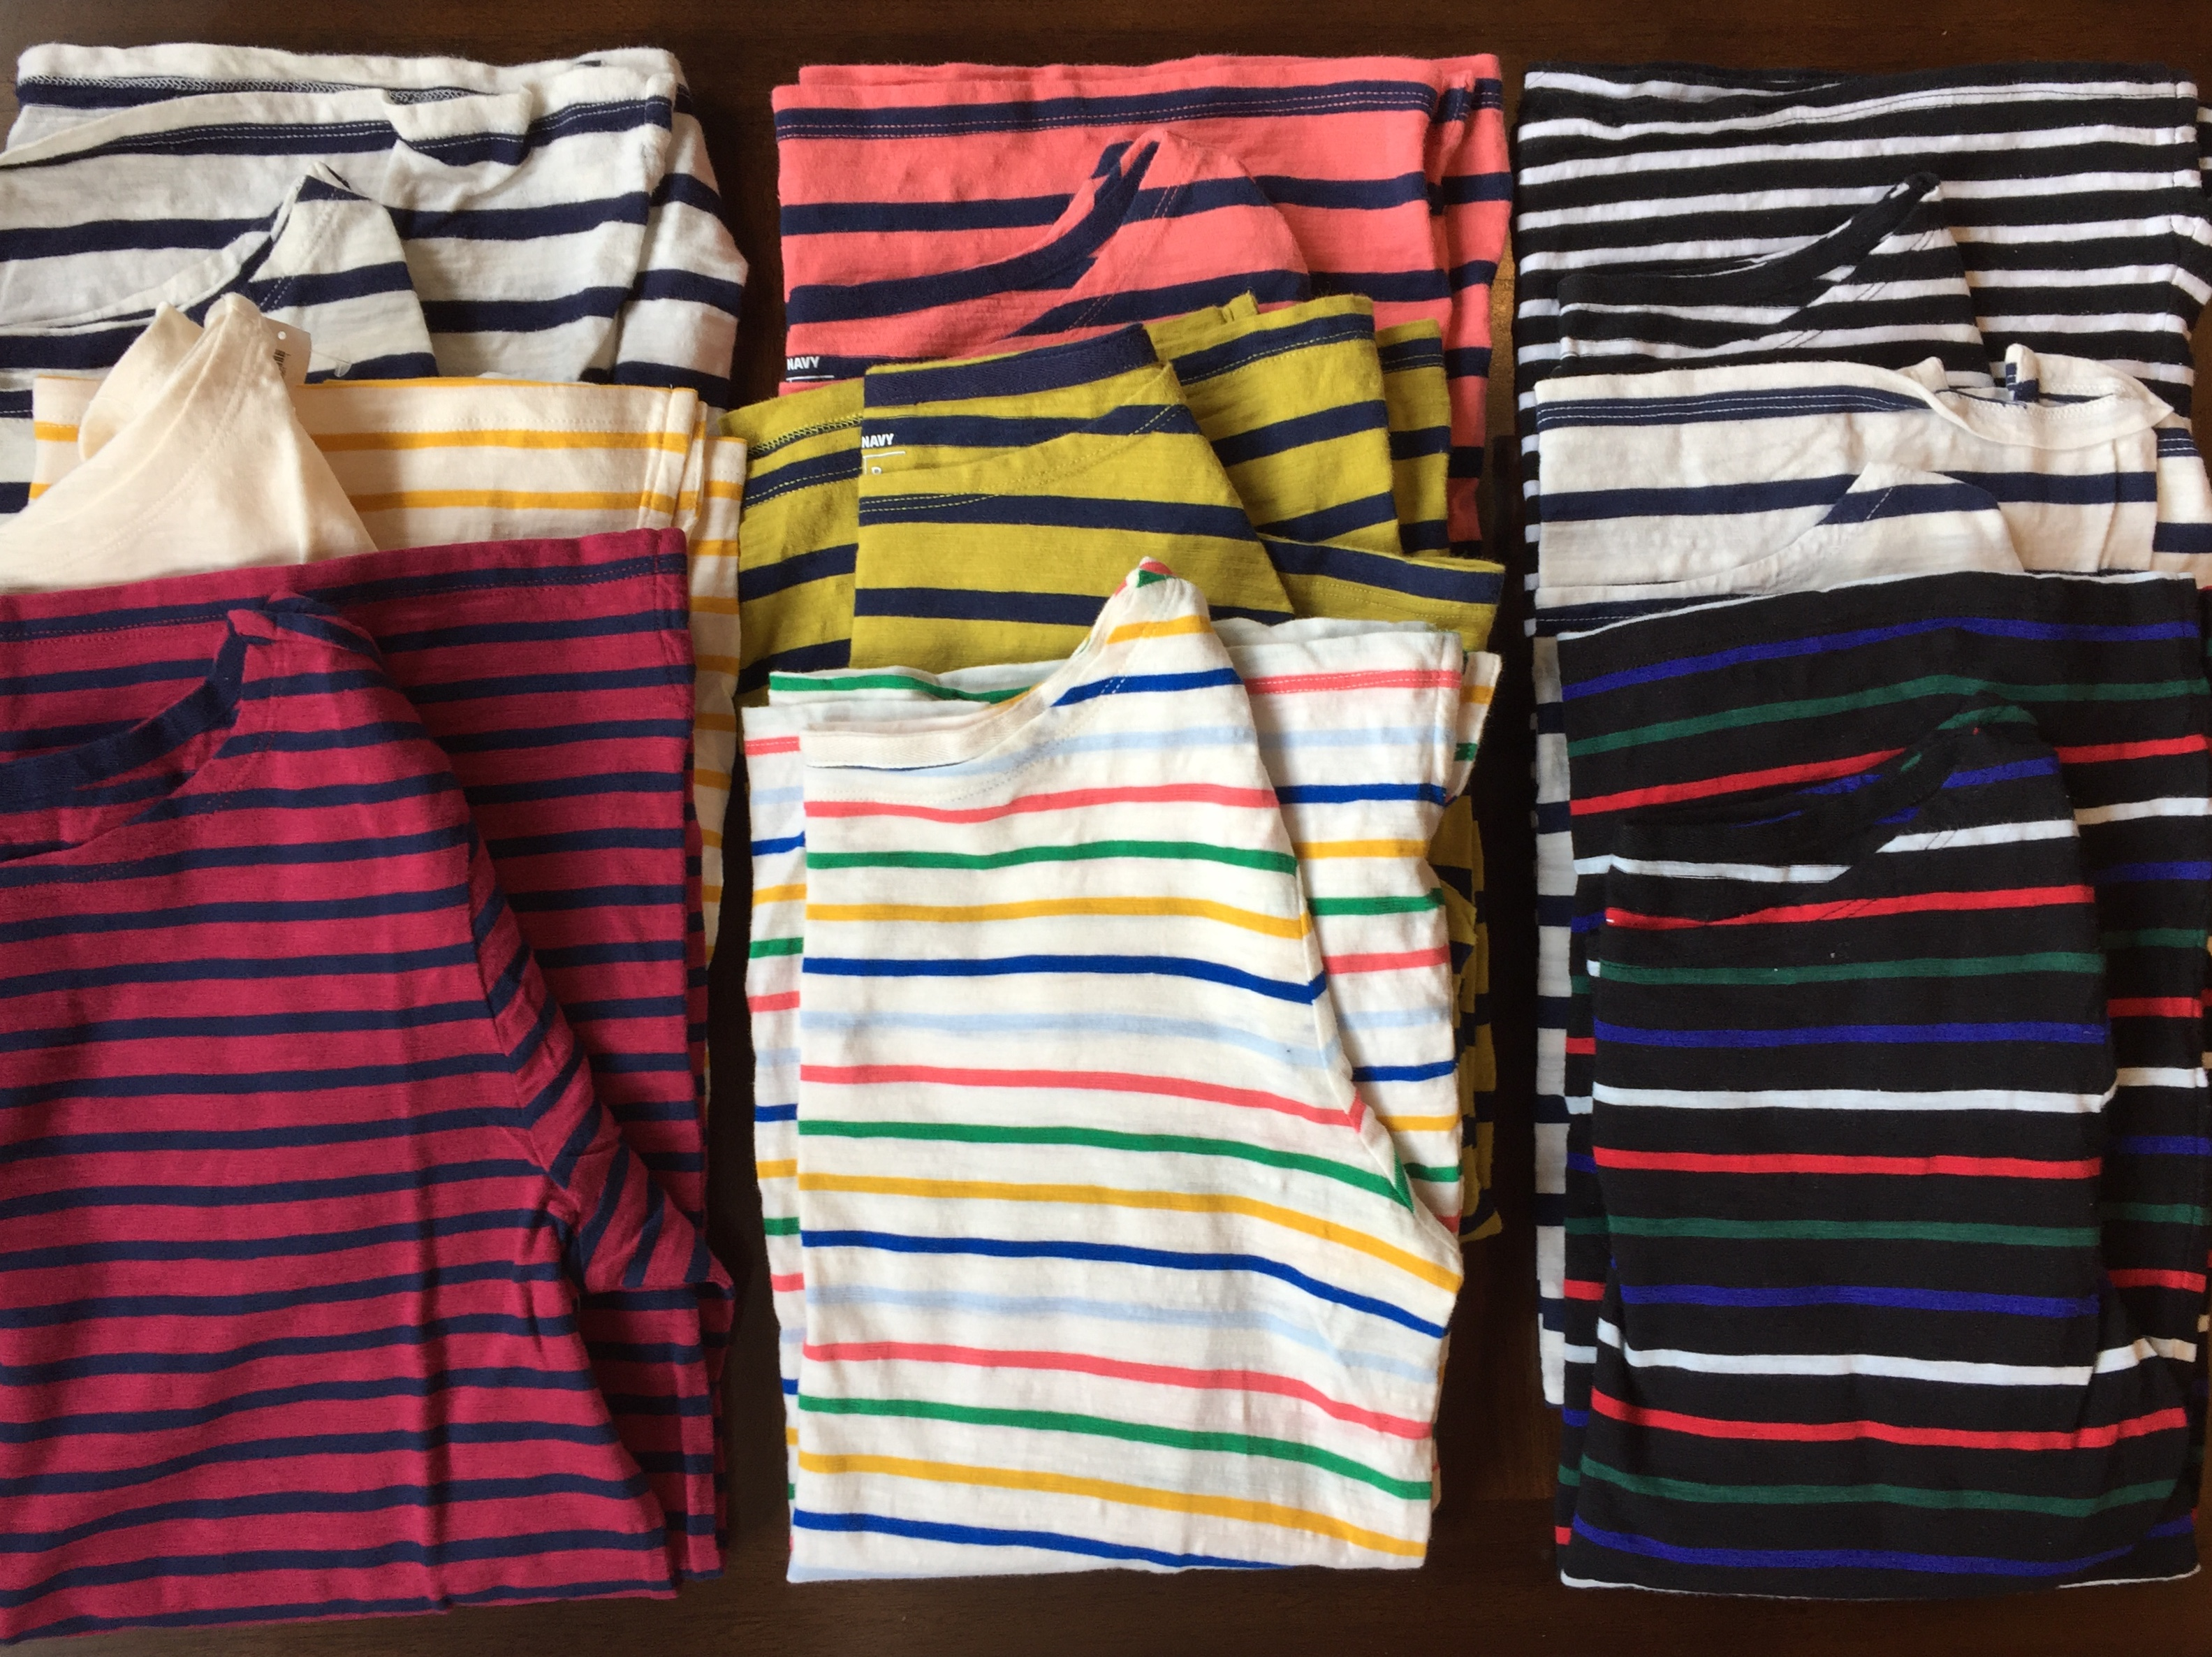 aa2ed2432c1 The Cost of Wearing the Same Thing Every Day - The Billfold